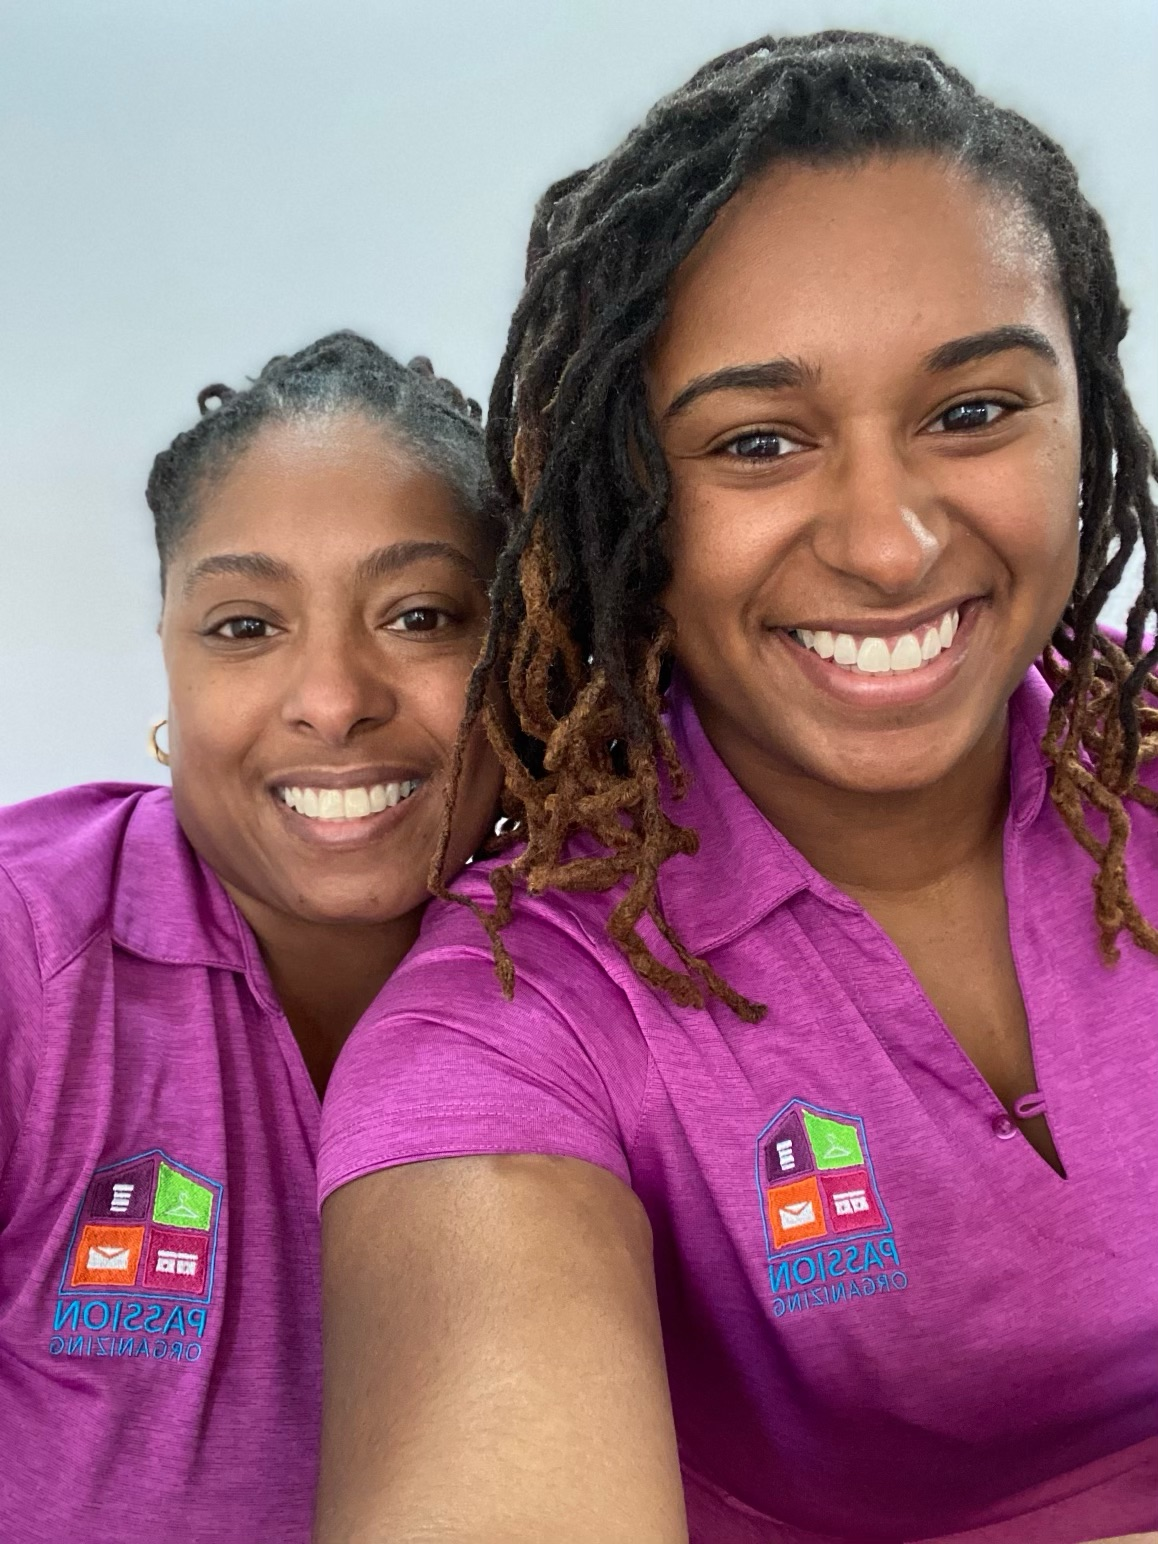 Alexia Ford and her daughter smile for a selfie in matching purple shirts donning the Passion Cleaning logo